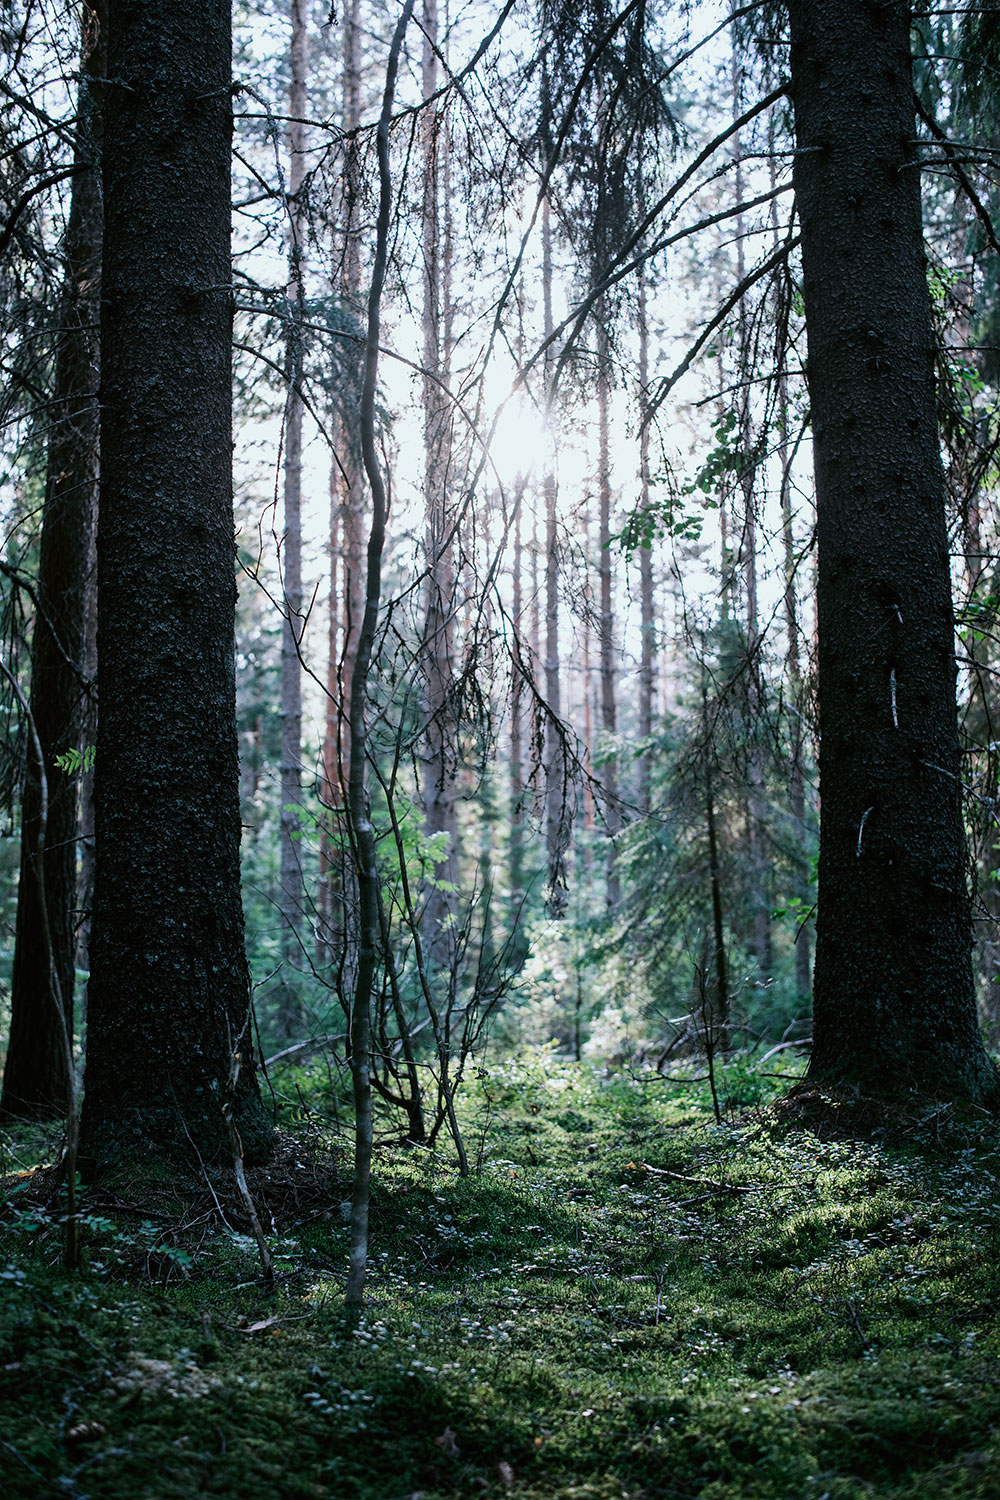 Sunlight filtering through the forest